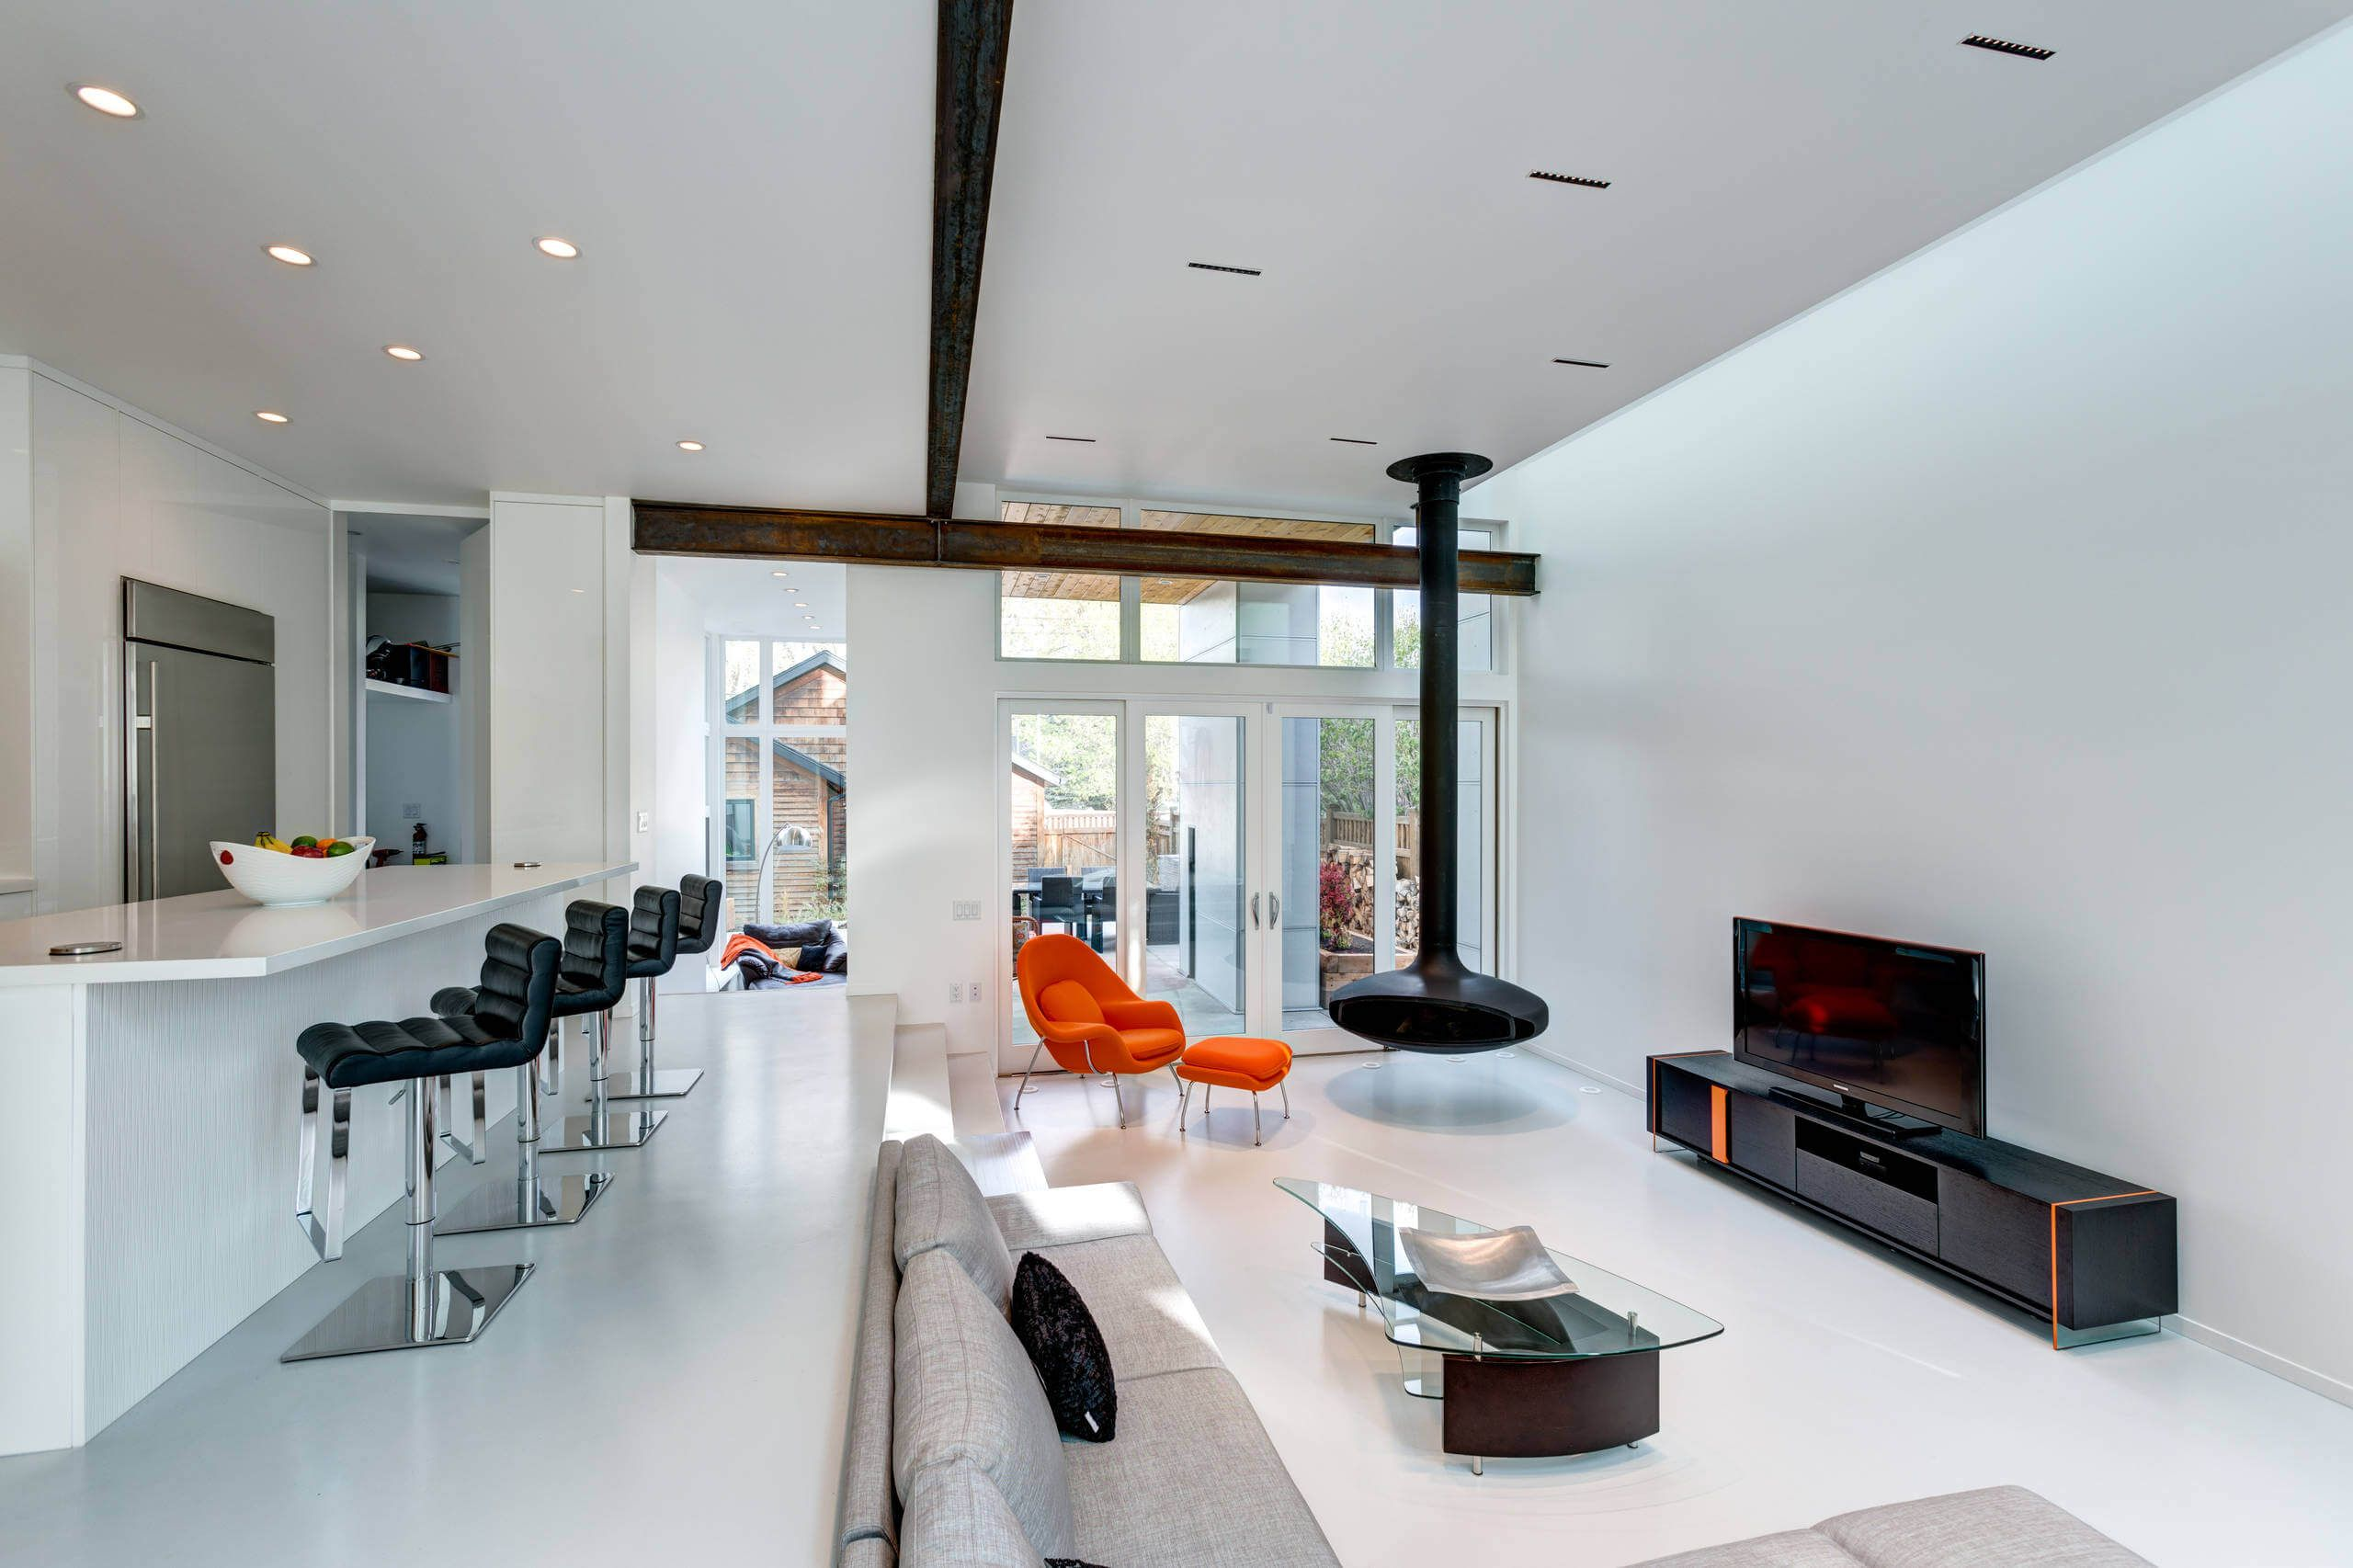 The White House By Philip Abusow With Images Interior Design